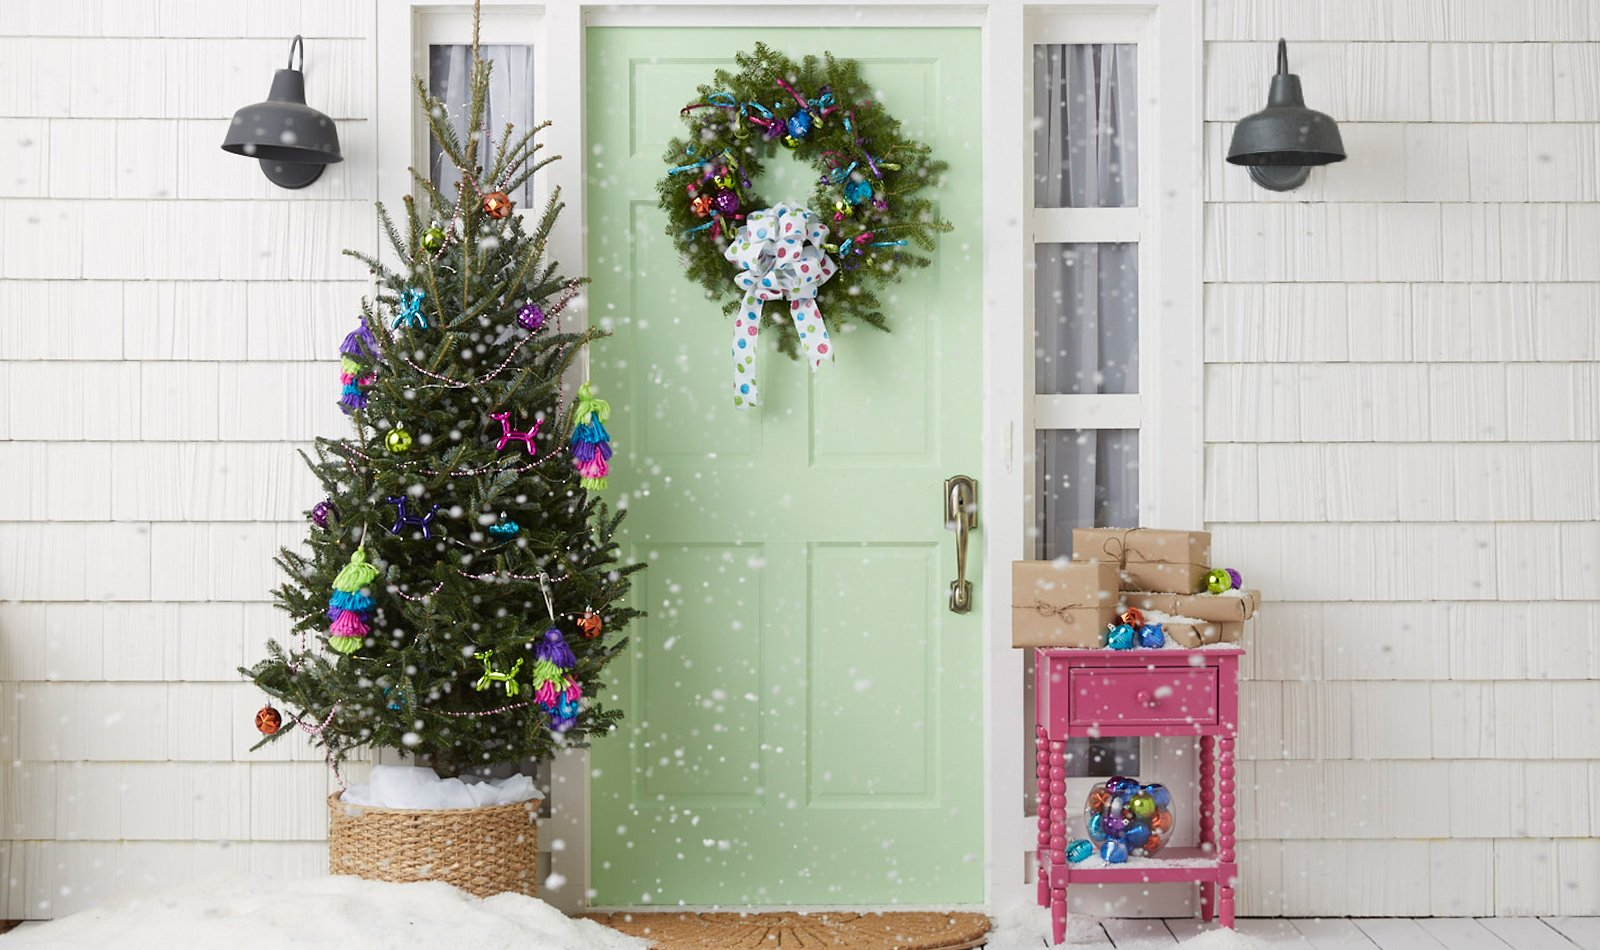 christmas-tree-on-porch-bright-ornaments-colorful